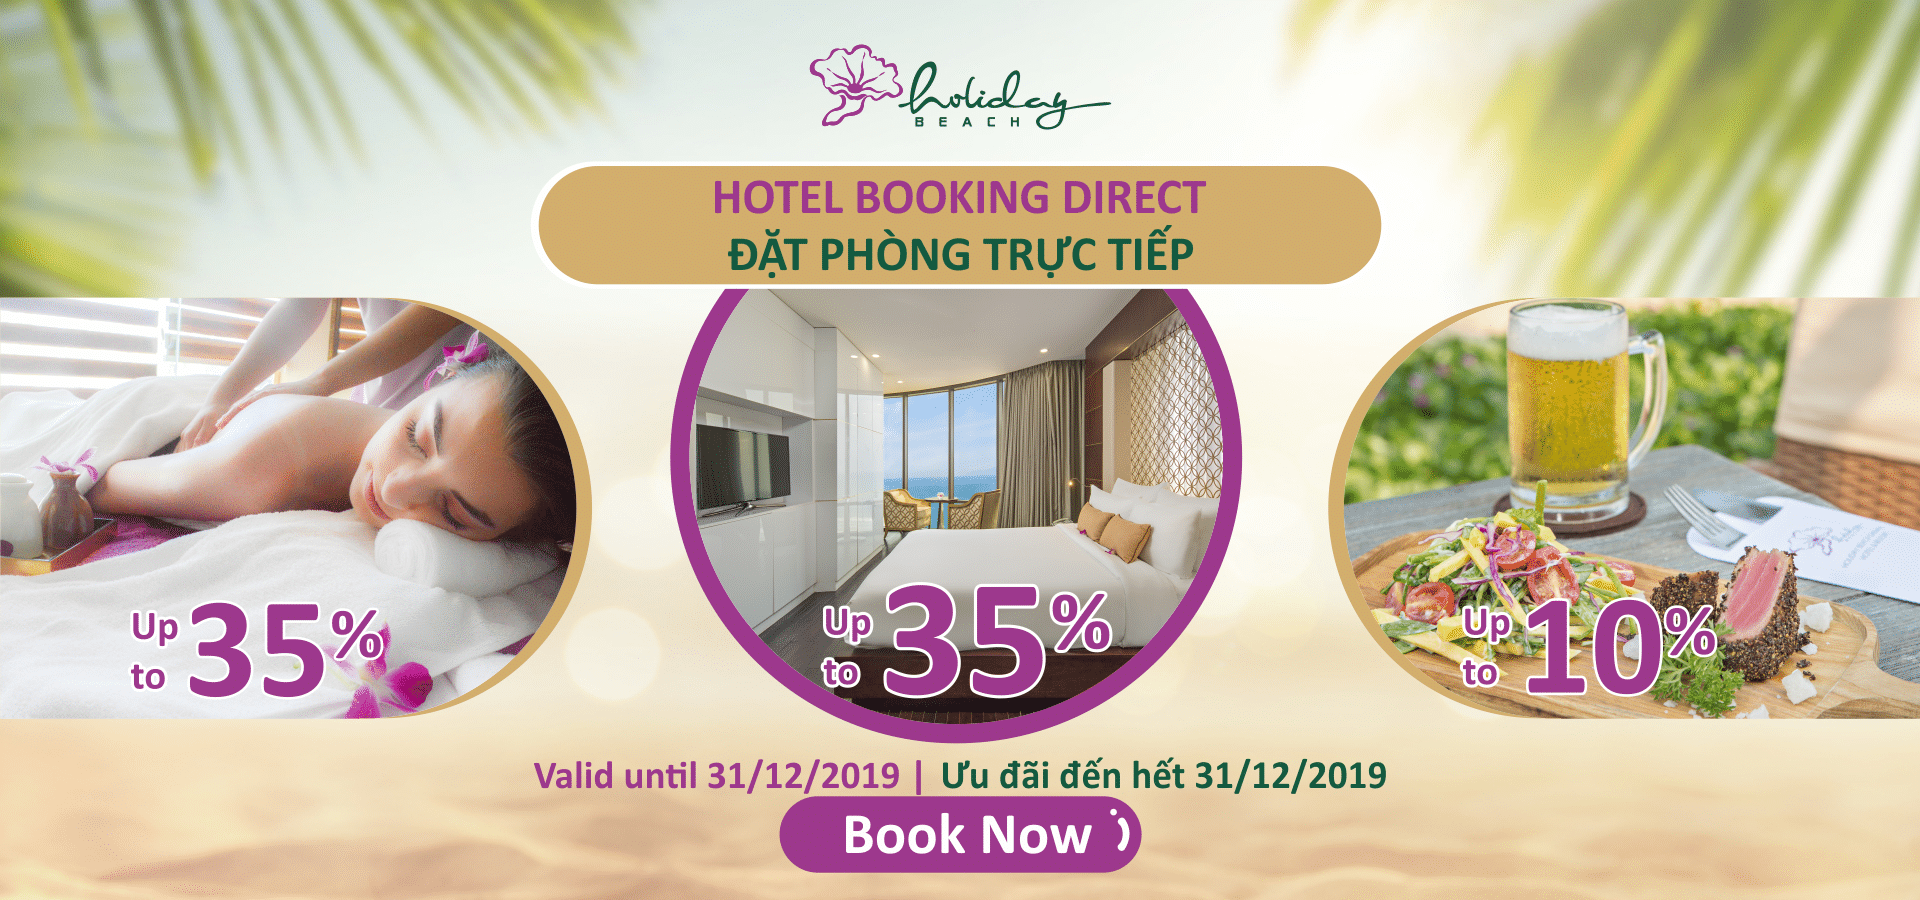 Direct booking - more benefits